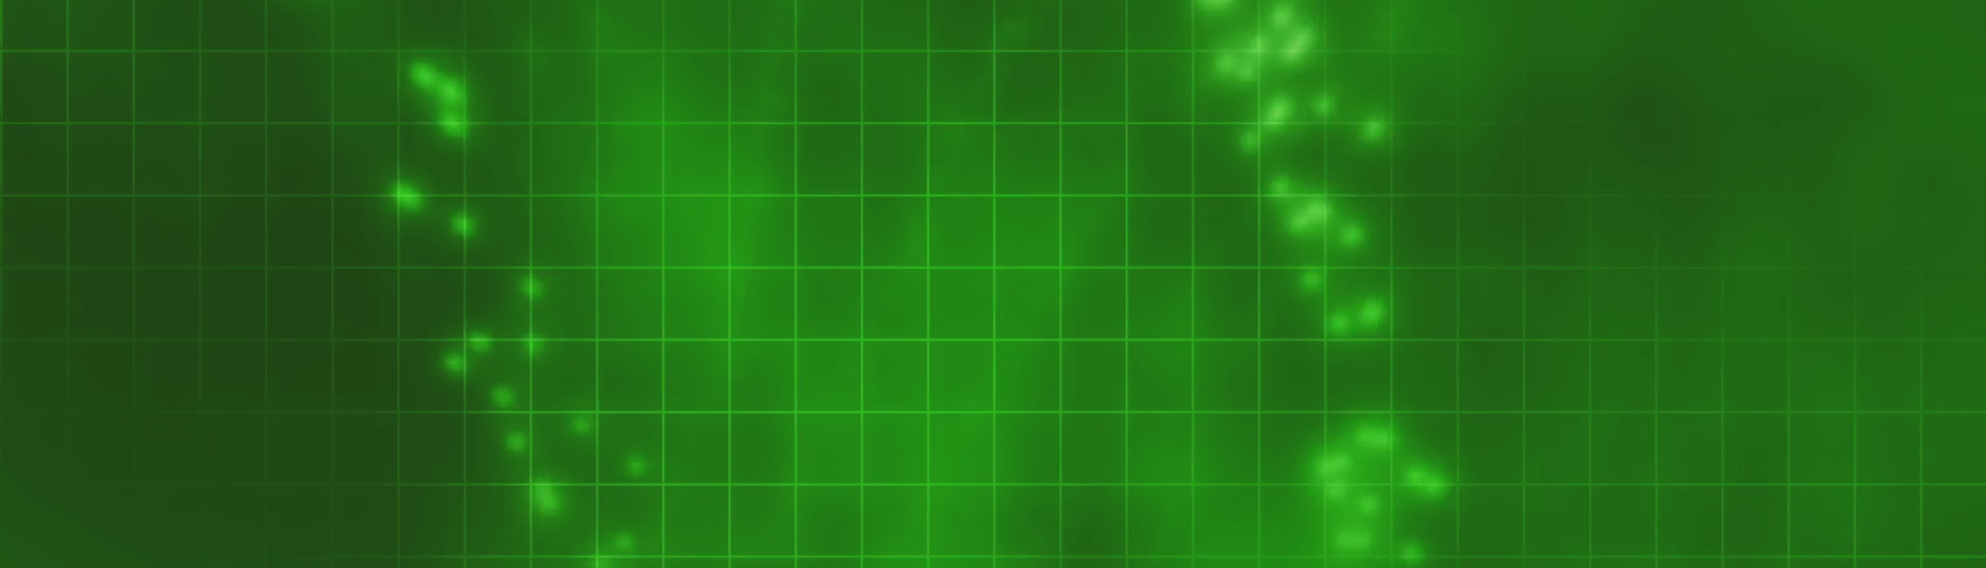 maxis-background